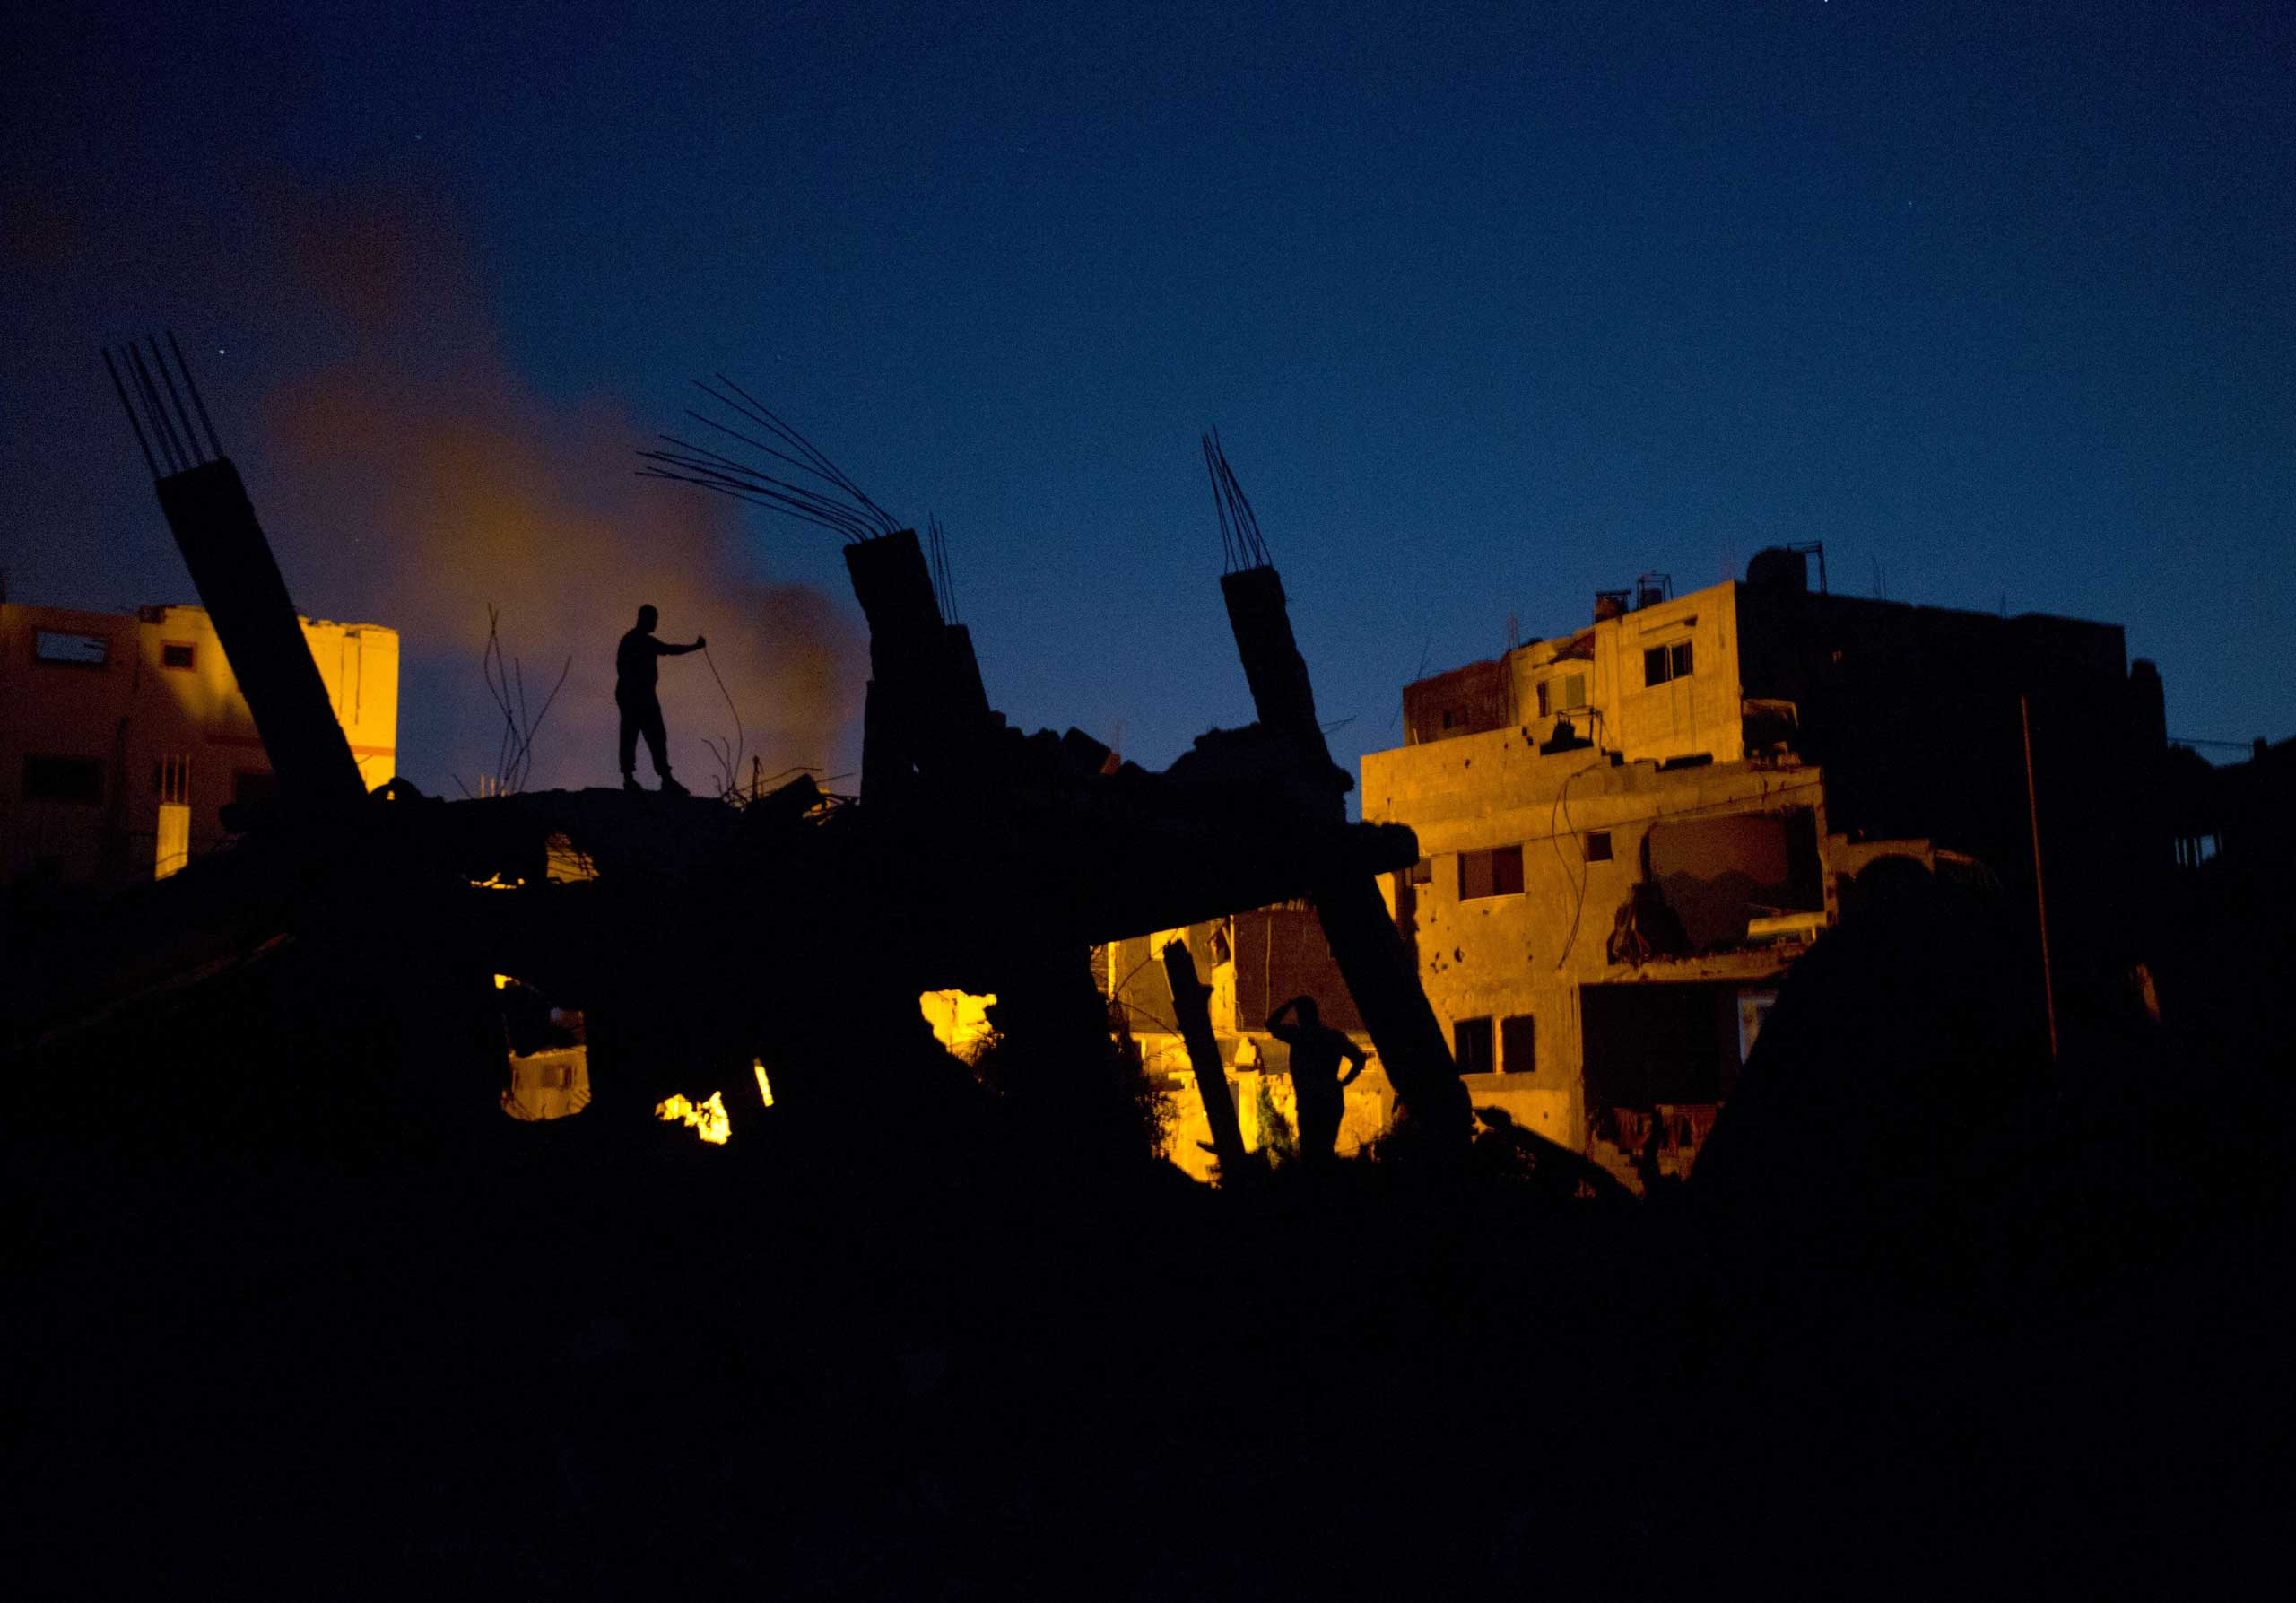 Sept.  24, 2014. Palestinian men light a fire to illuminate their neighborhood destroyed during the 50 days of conflict between Israel and Hamas, in the Shejaiya neighborhood of Gaza City.